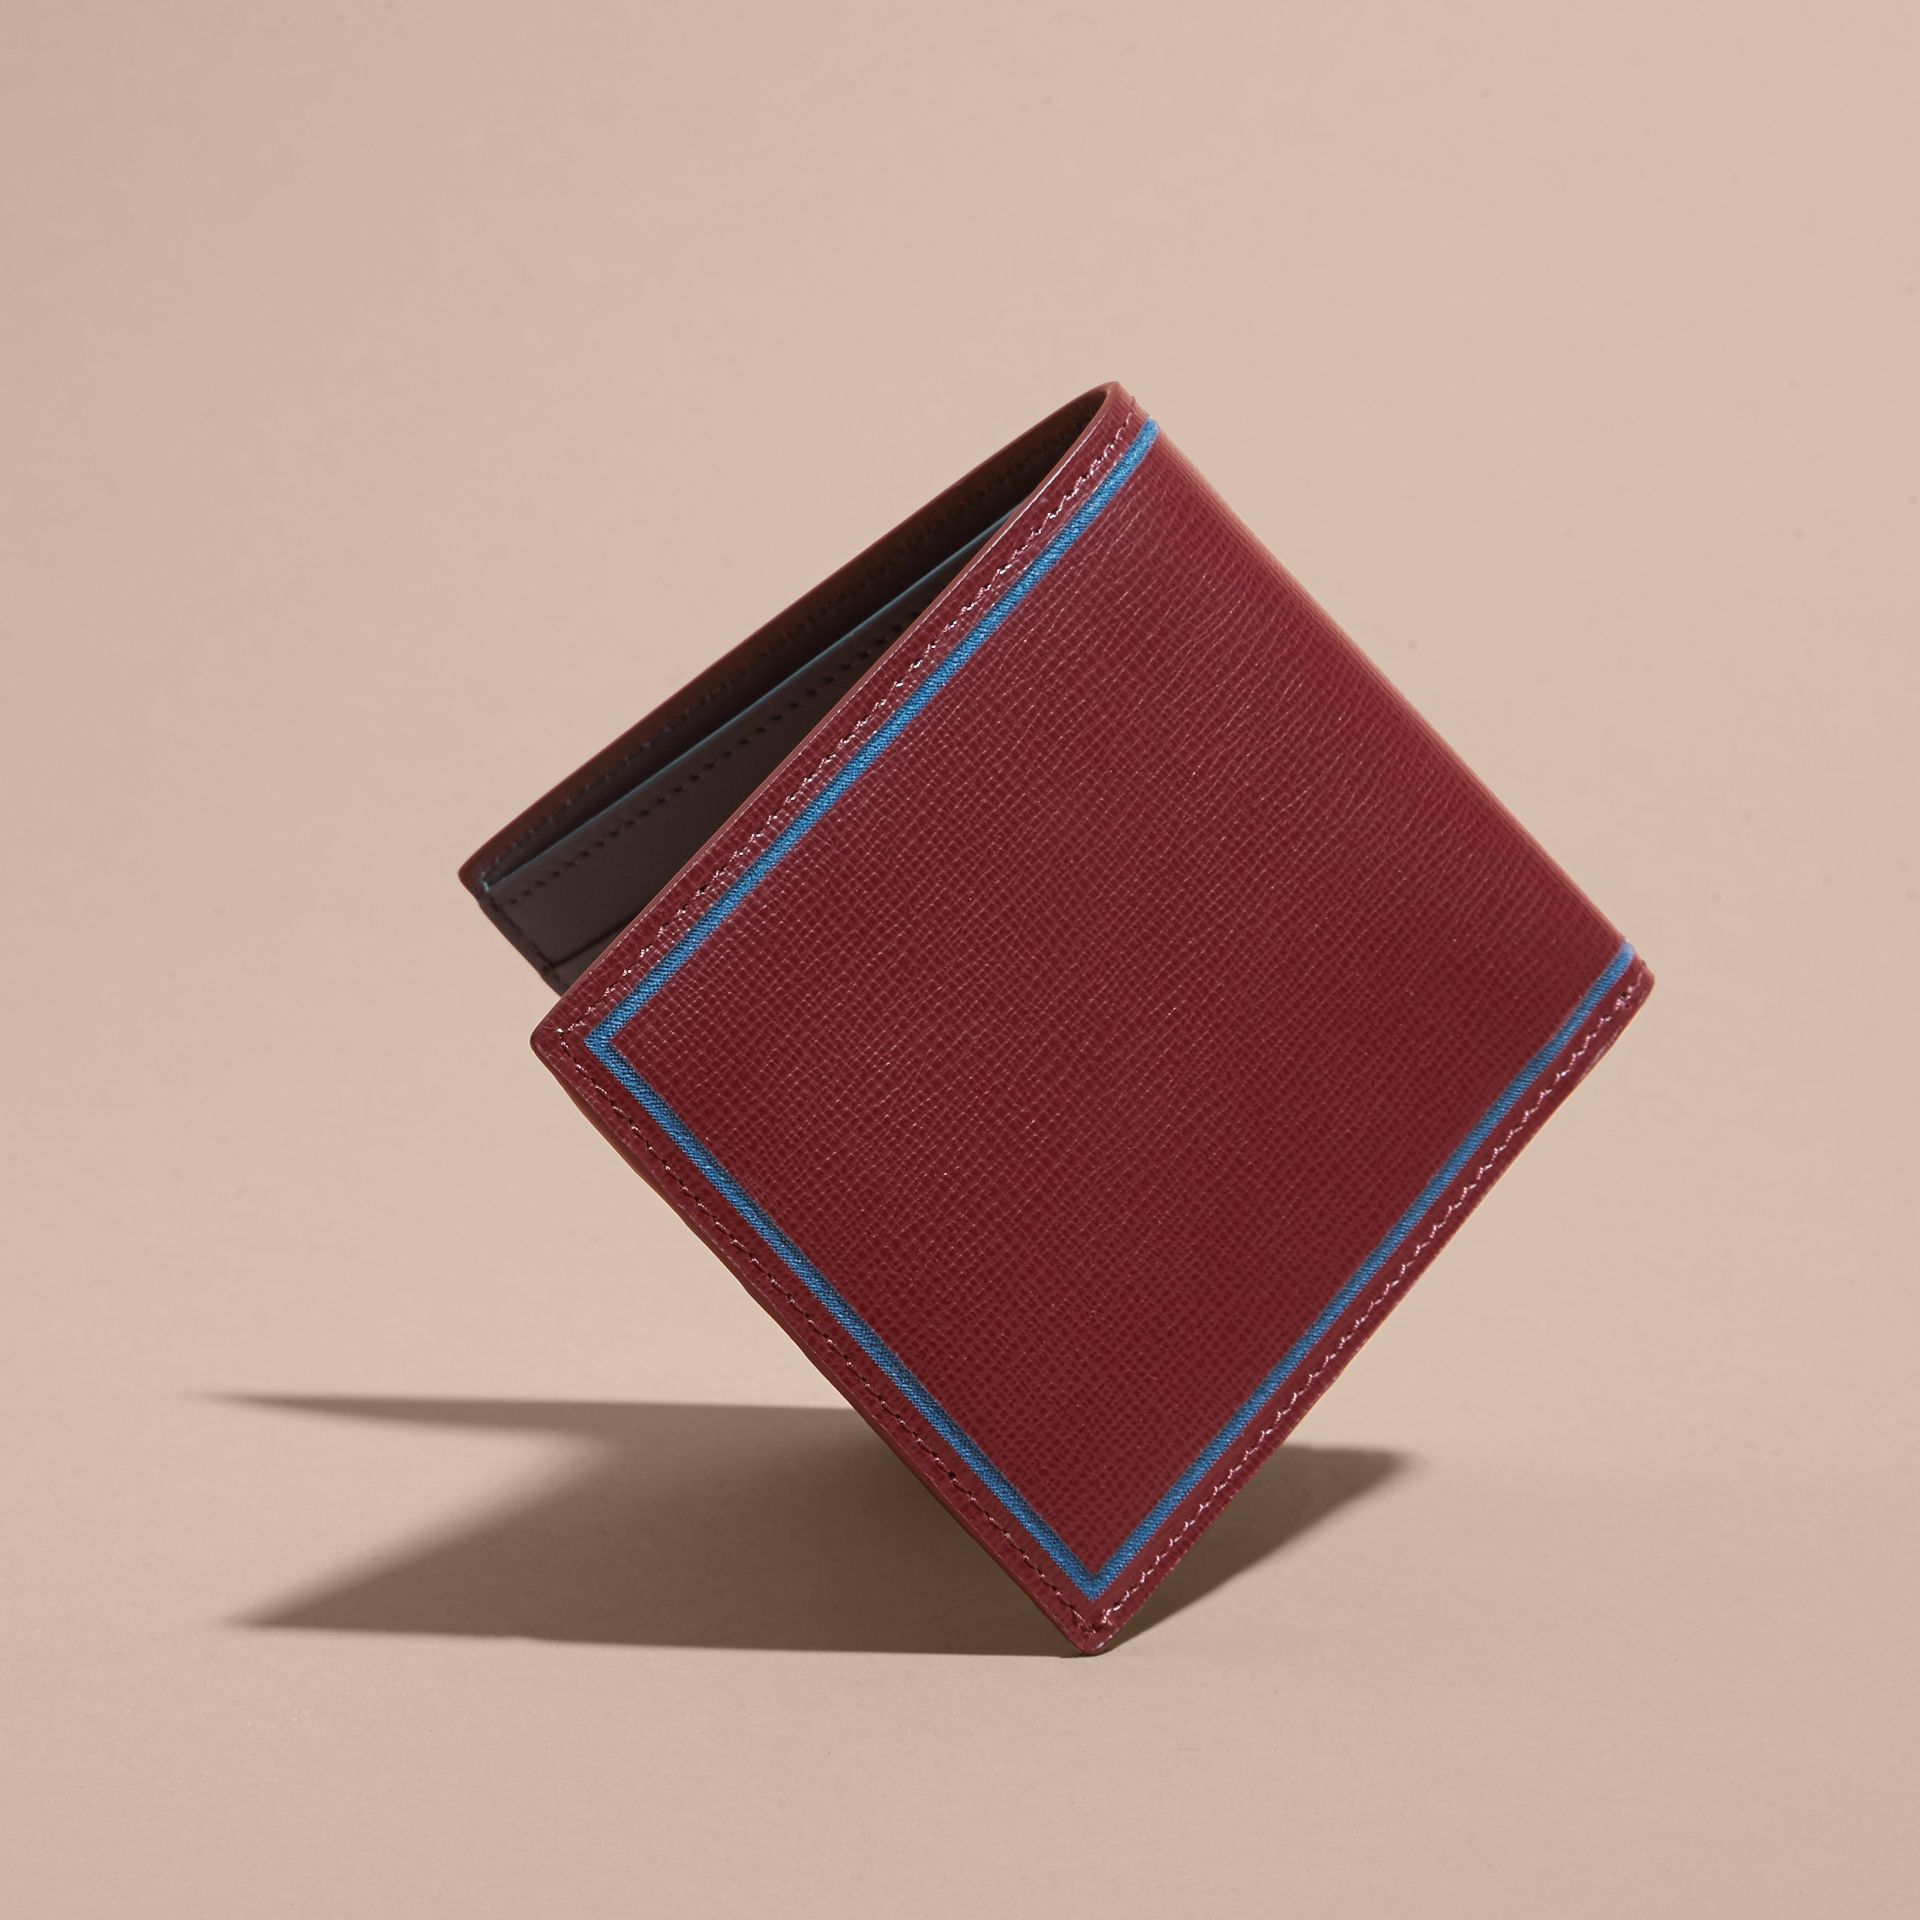 Border Detail London Leather Folding Wallet Burgundy Red - gallery image 5